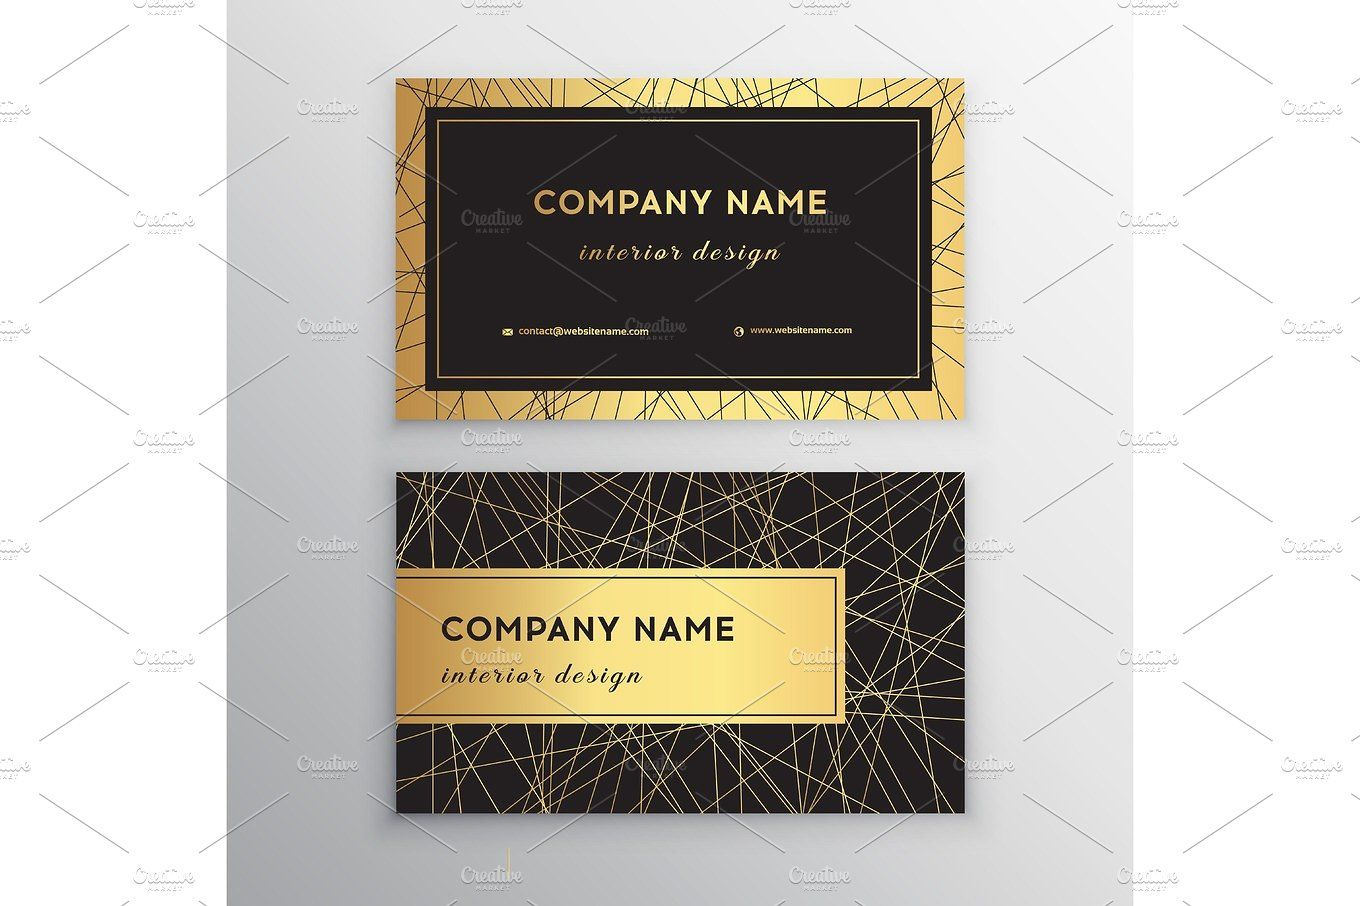 Luxury Business Card Gold And Black Horizontal Business Card Template Design For Personal Or Business Use With Front And Back Side Letterpress Business Card Design Luxury Business Cards Letterpress Business Cards